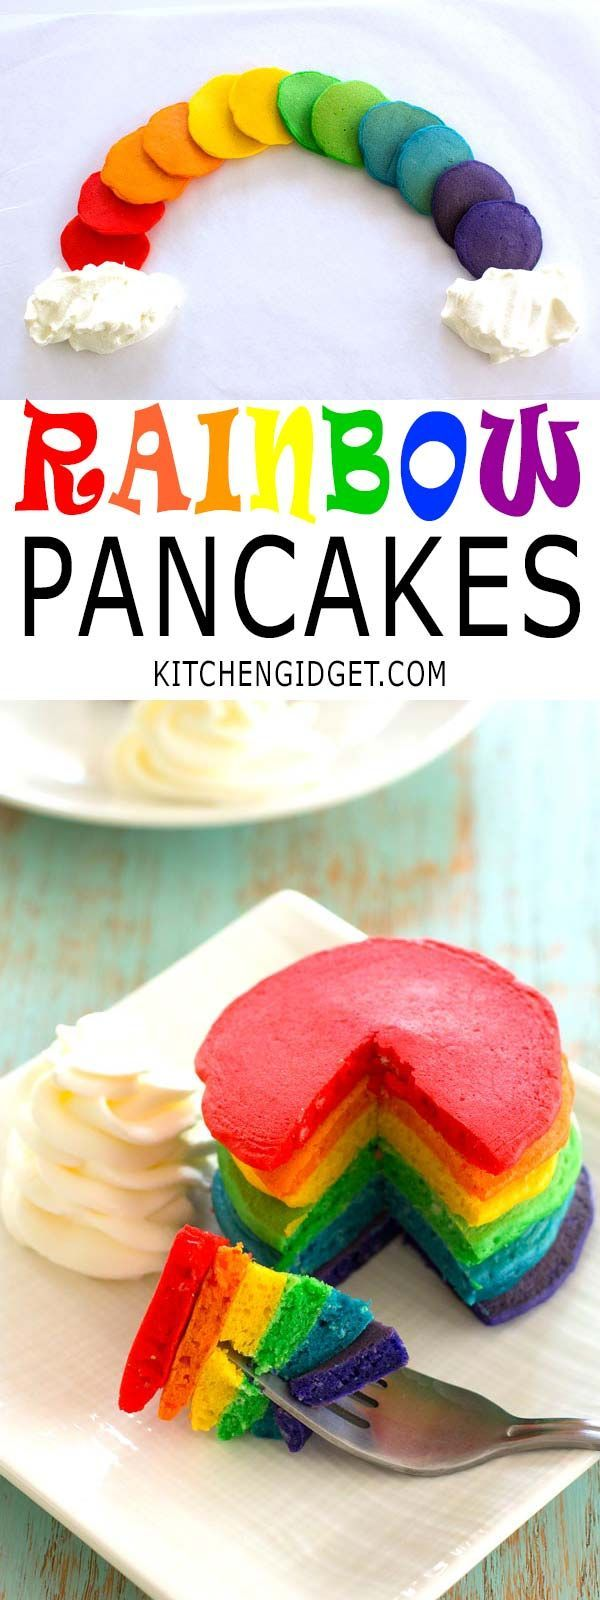 """How to make rainbow pancakes for St. Patrick's Day breakfast! Colored pancakes with fluffy """"clouds"""" of whipped cream are lucky indeed!"""